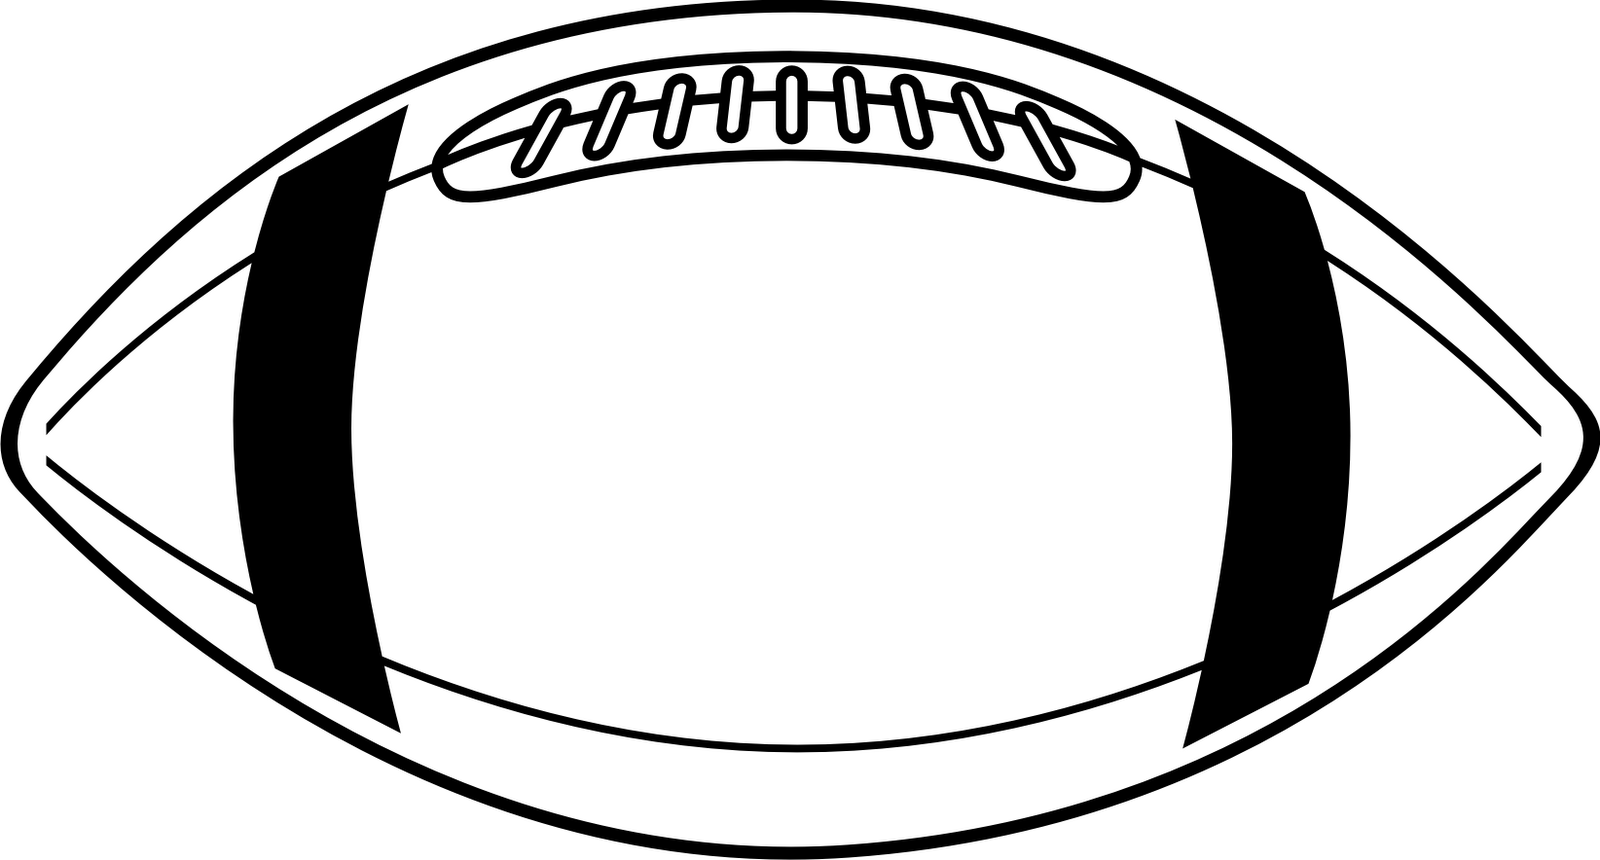 Free Black And White Football Clipart Download Free Clip Art Free Clip Art On Clipart Library